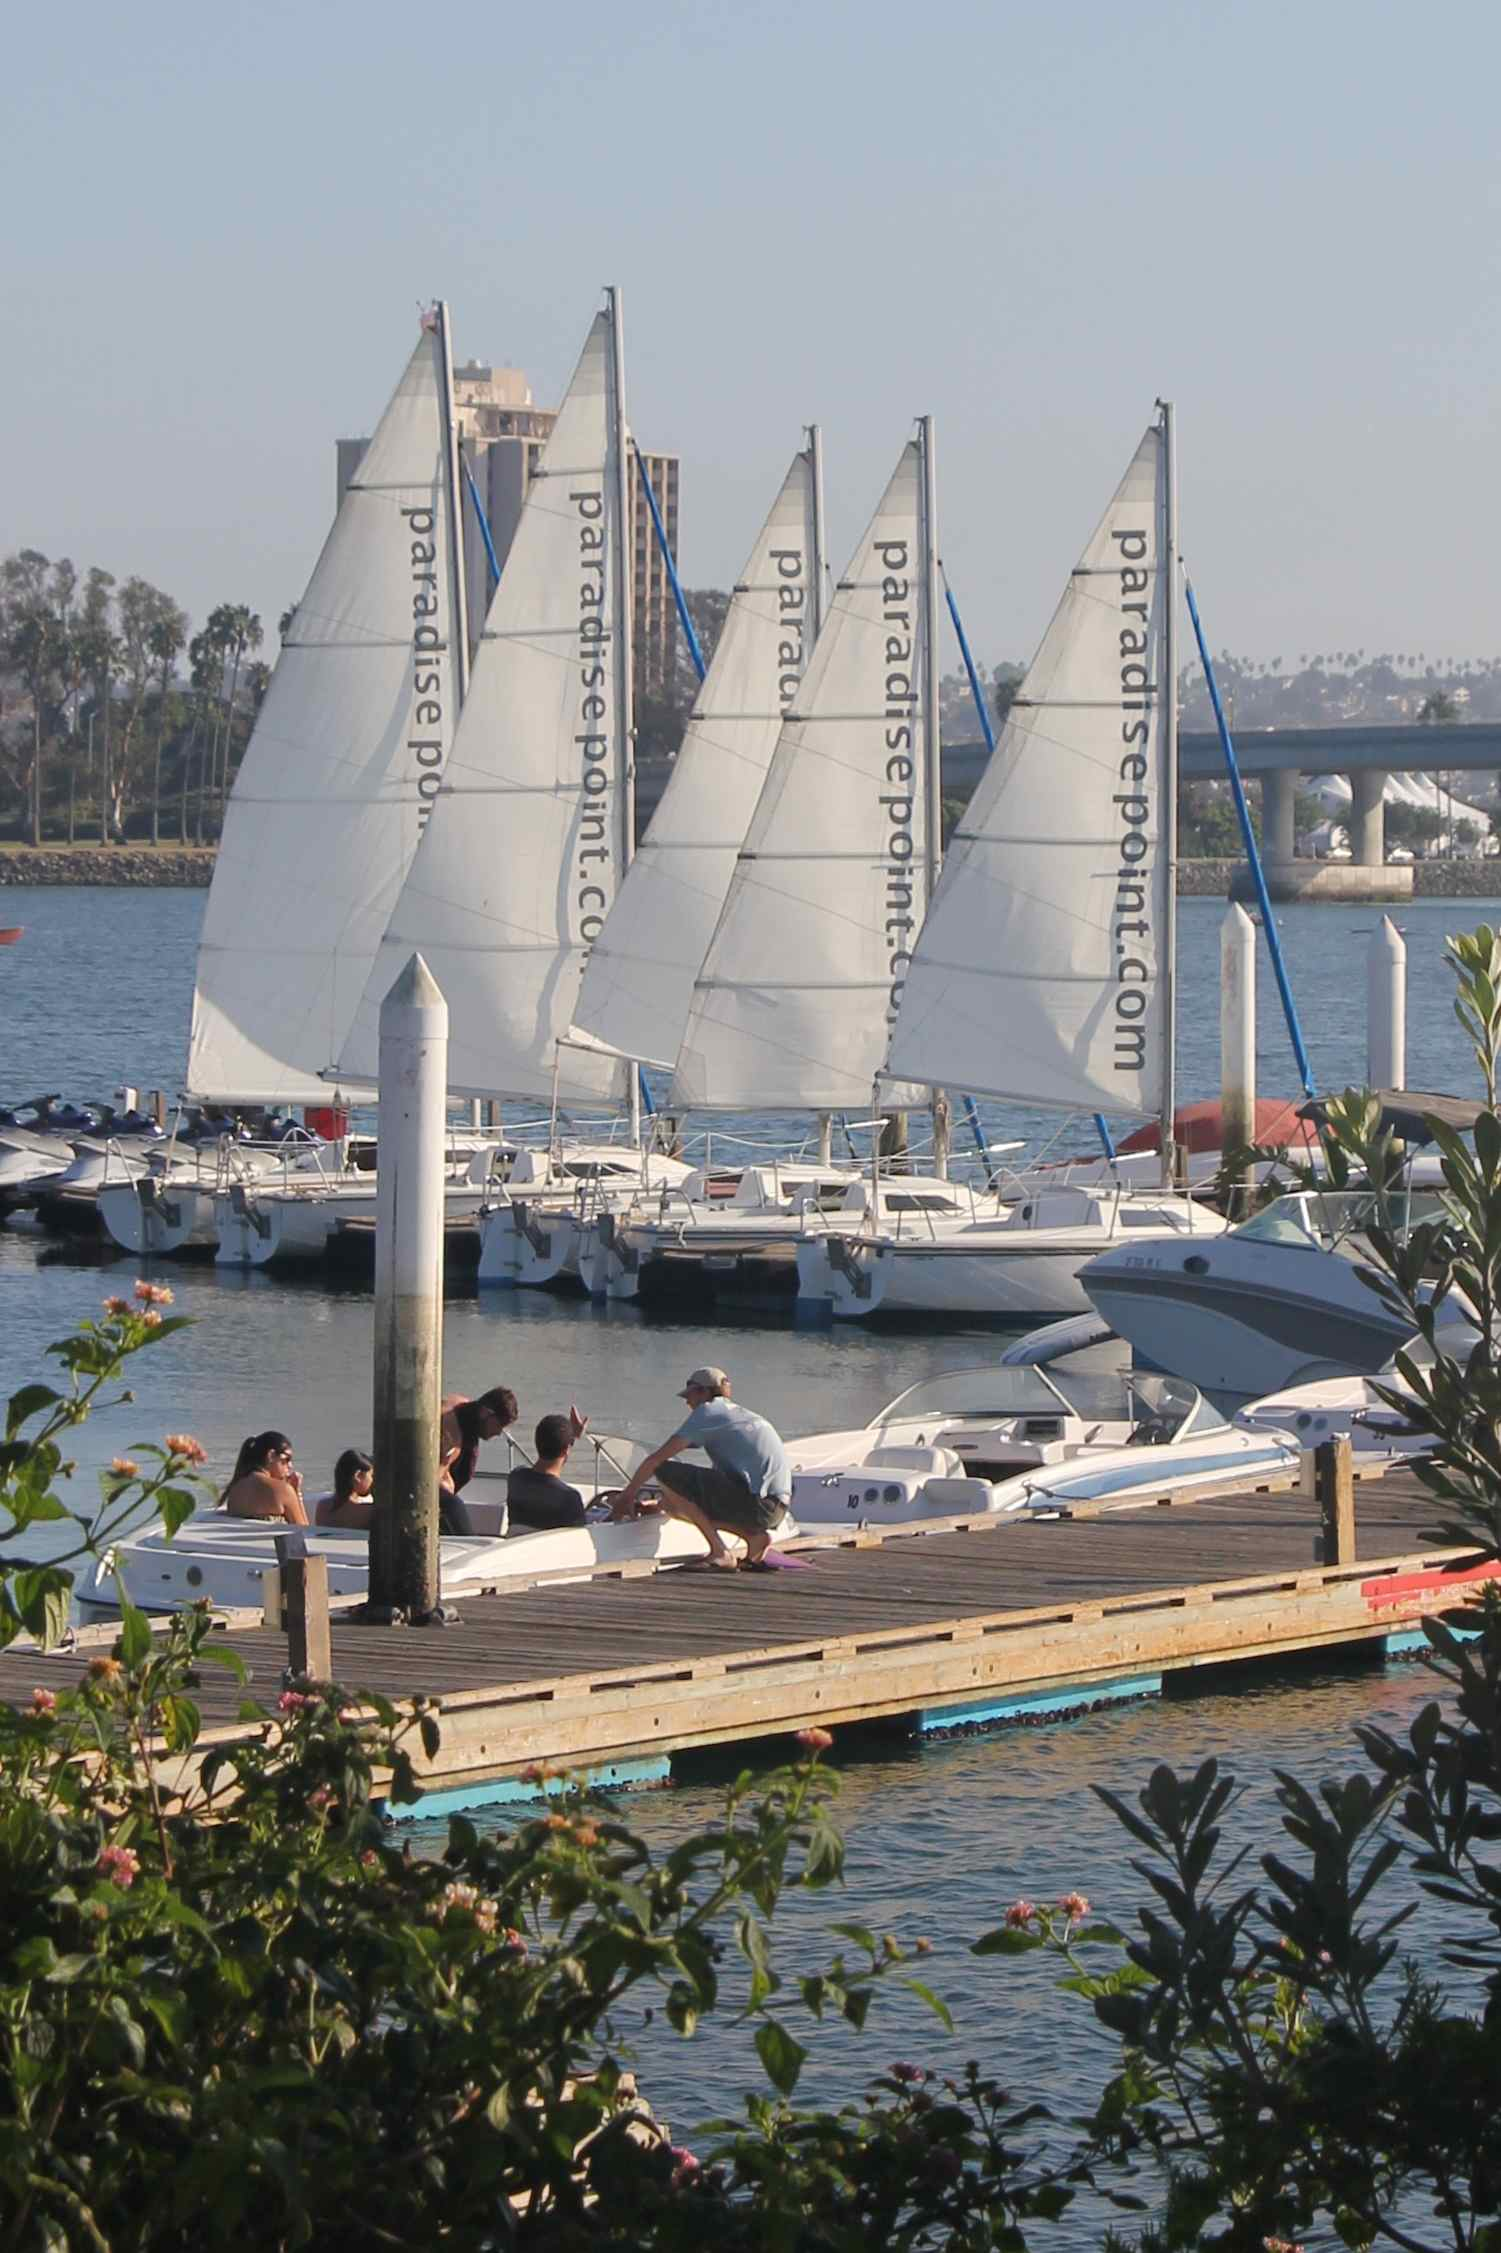 Rental sailboats, jetskis and more